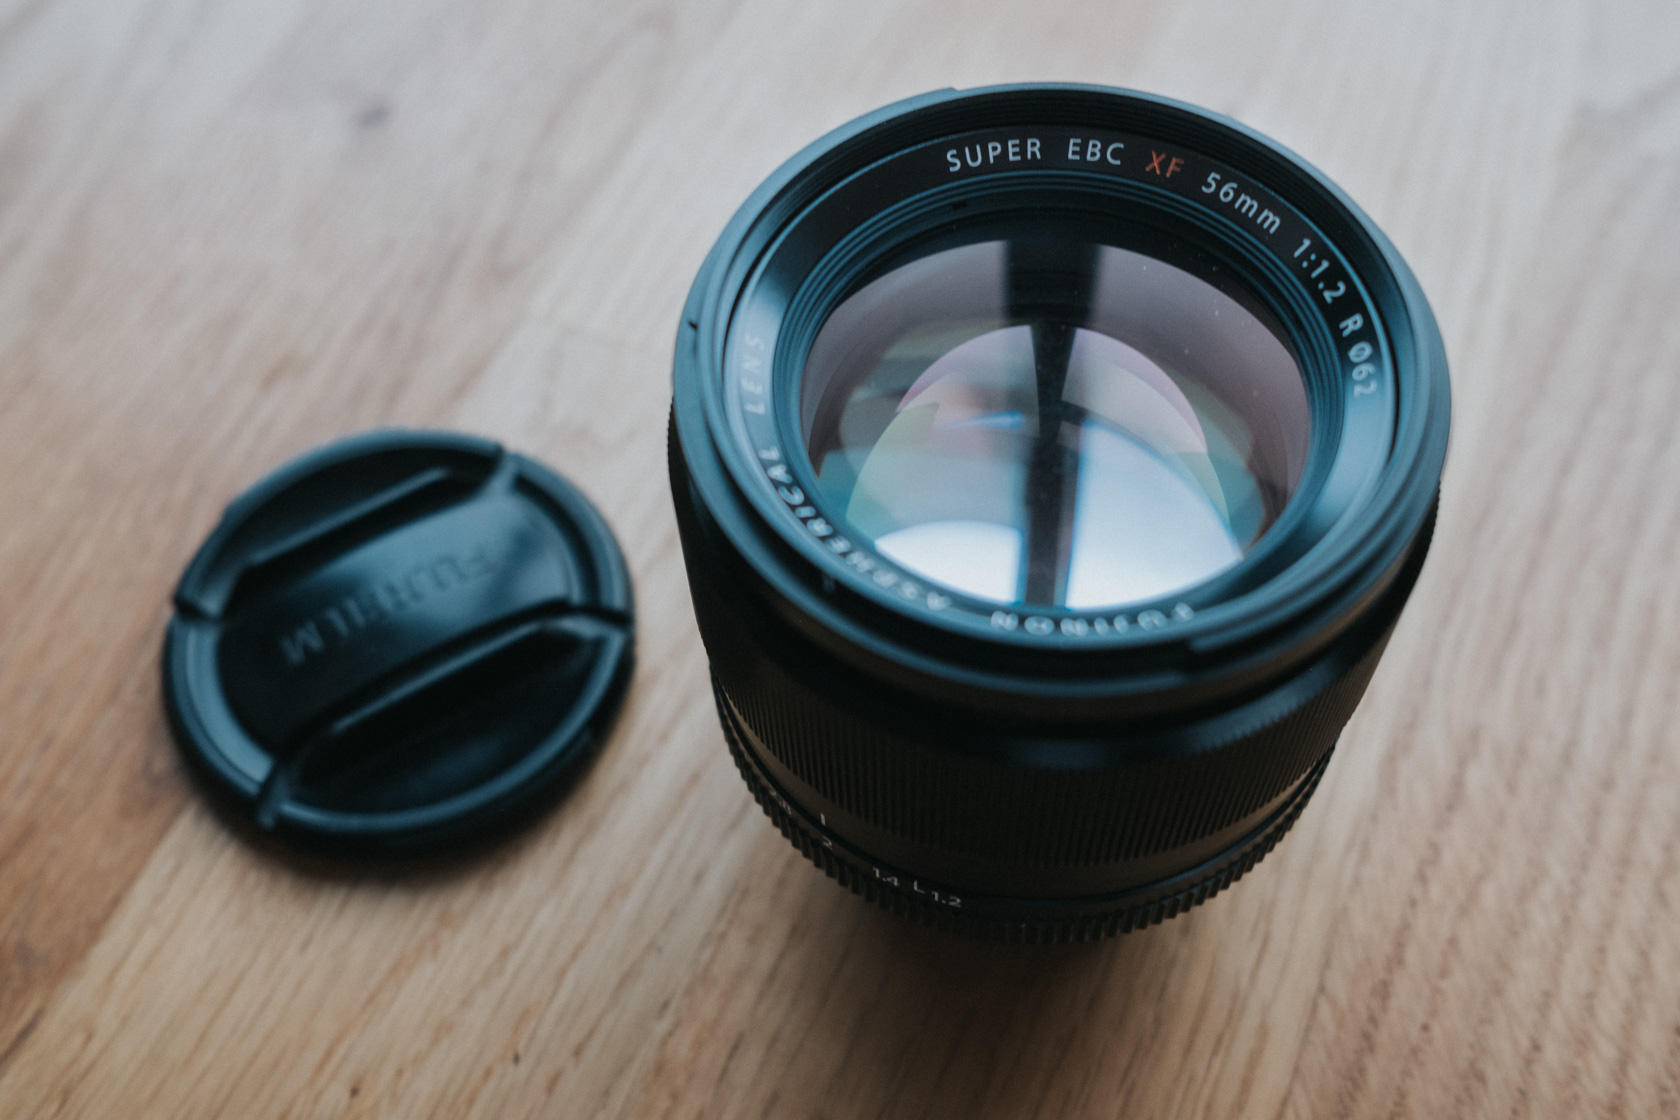 Fuji 56mm f1.2 review